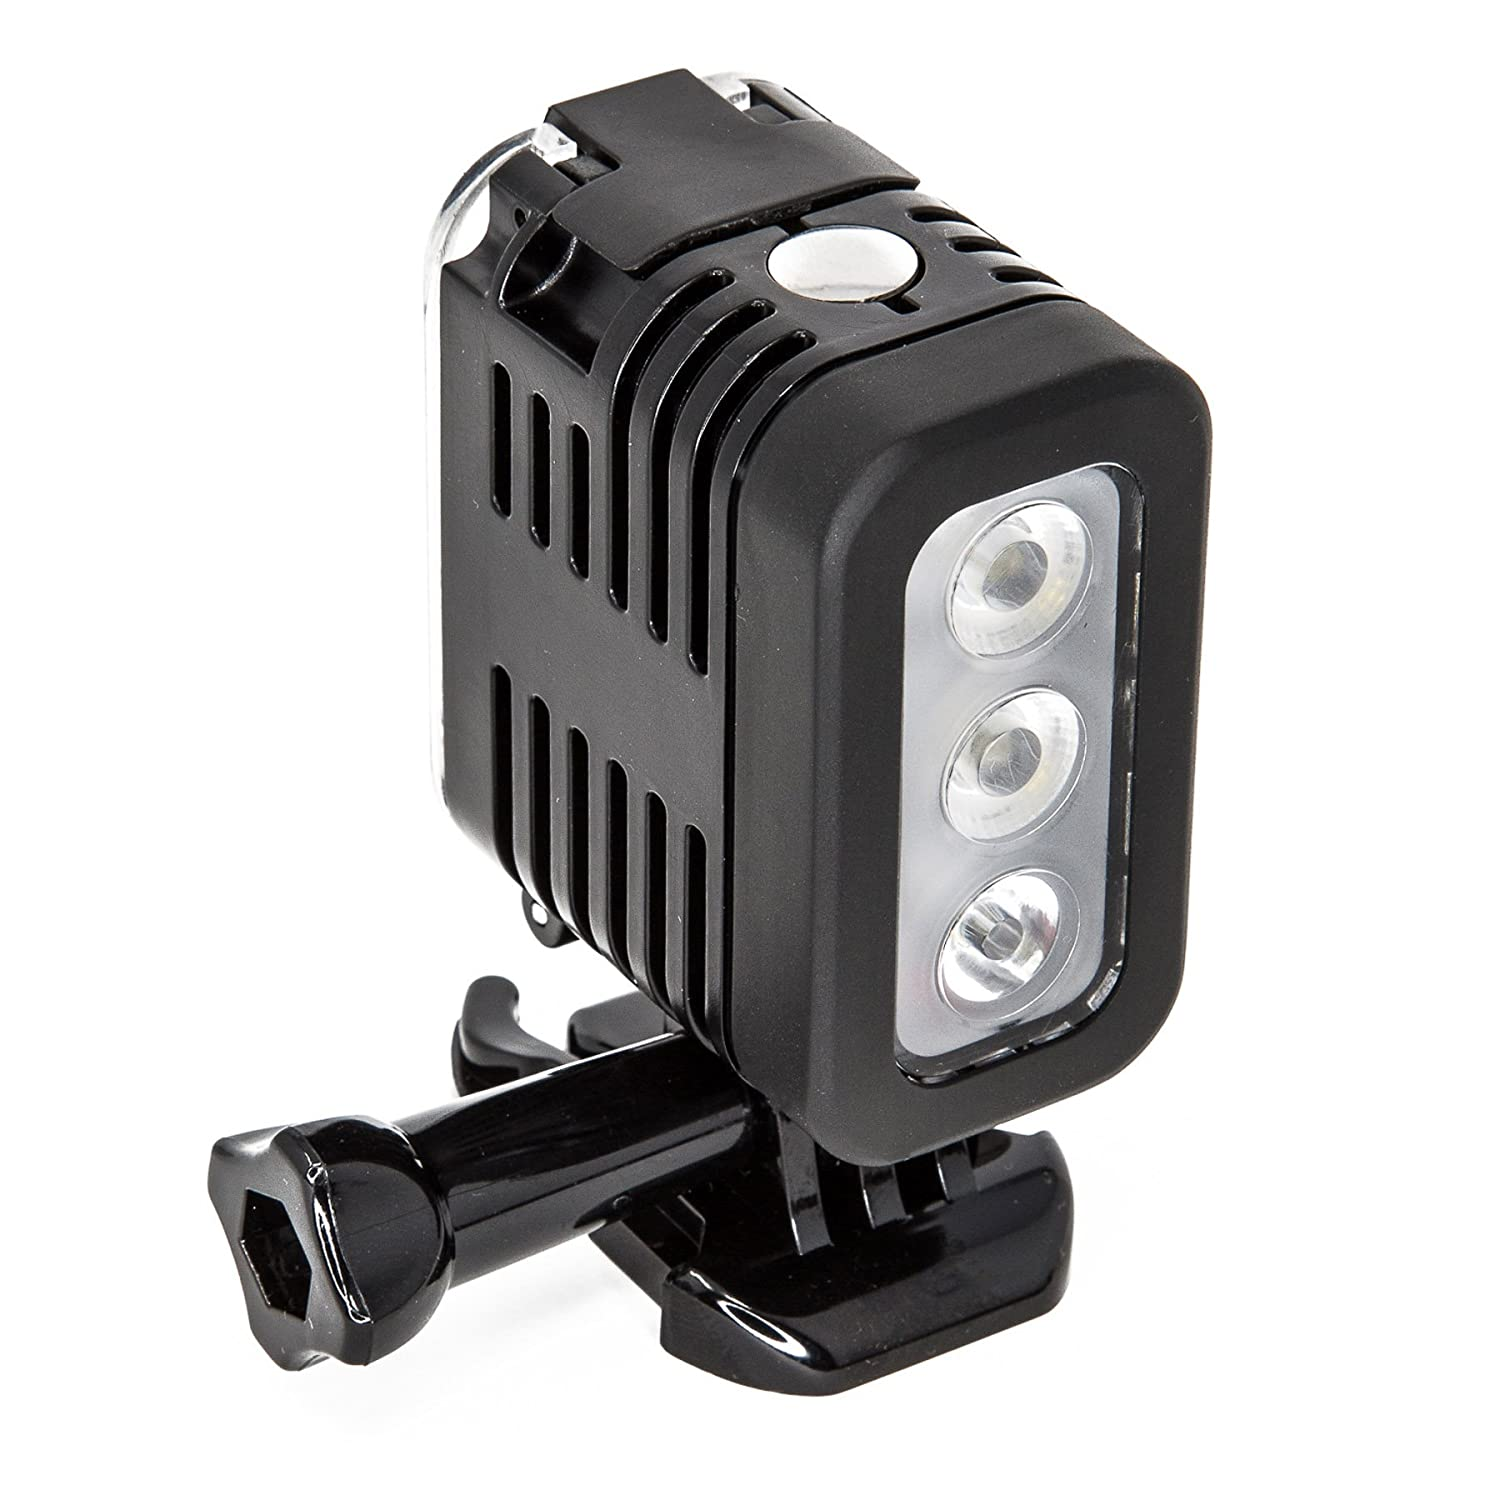 Ultimaxx 40m (131 FT) Waterproof LED Underwater Dive Light for GoPro HERO 6, 5, 4, 3+, 3 Series, HERO, HERO+, HERO+ LCD, GoPro HERO Session And Other Similar Sized Action Cameras 704660943522